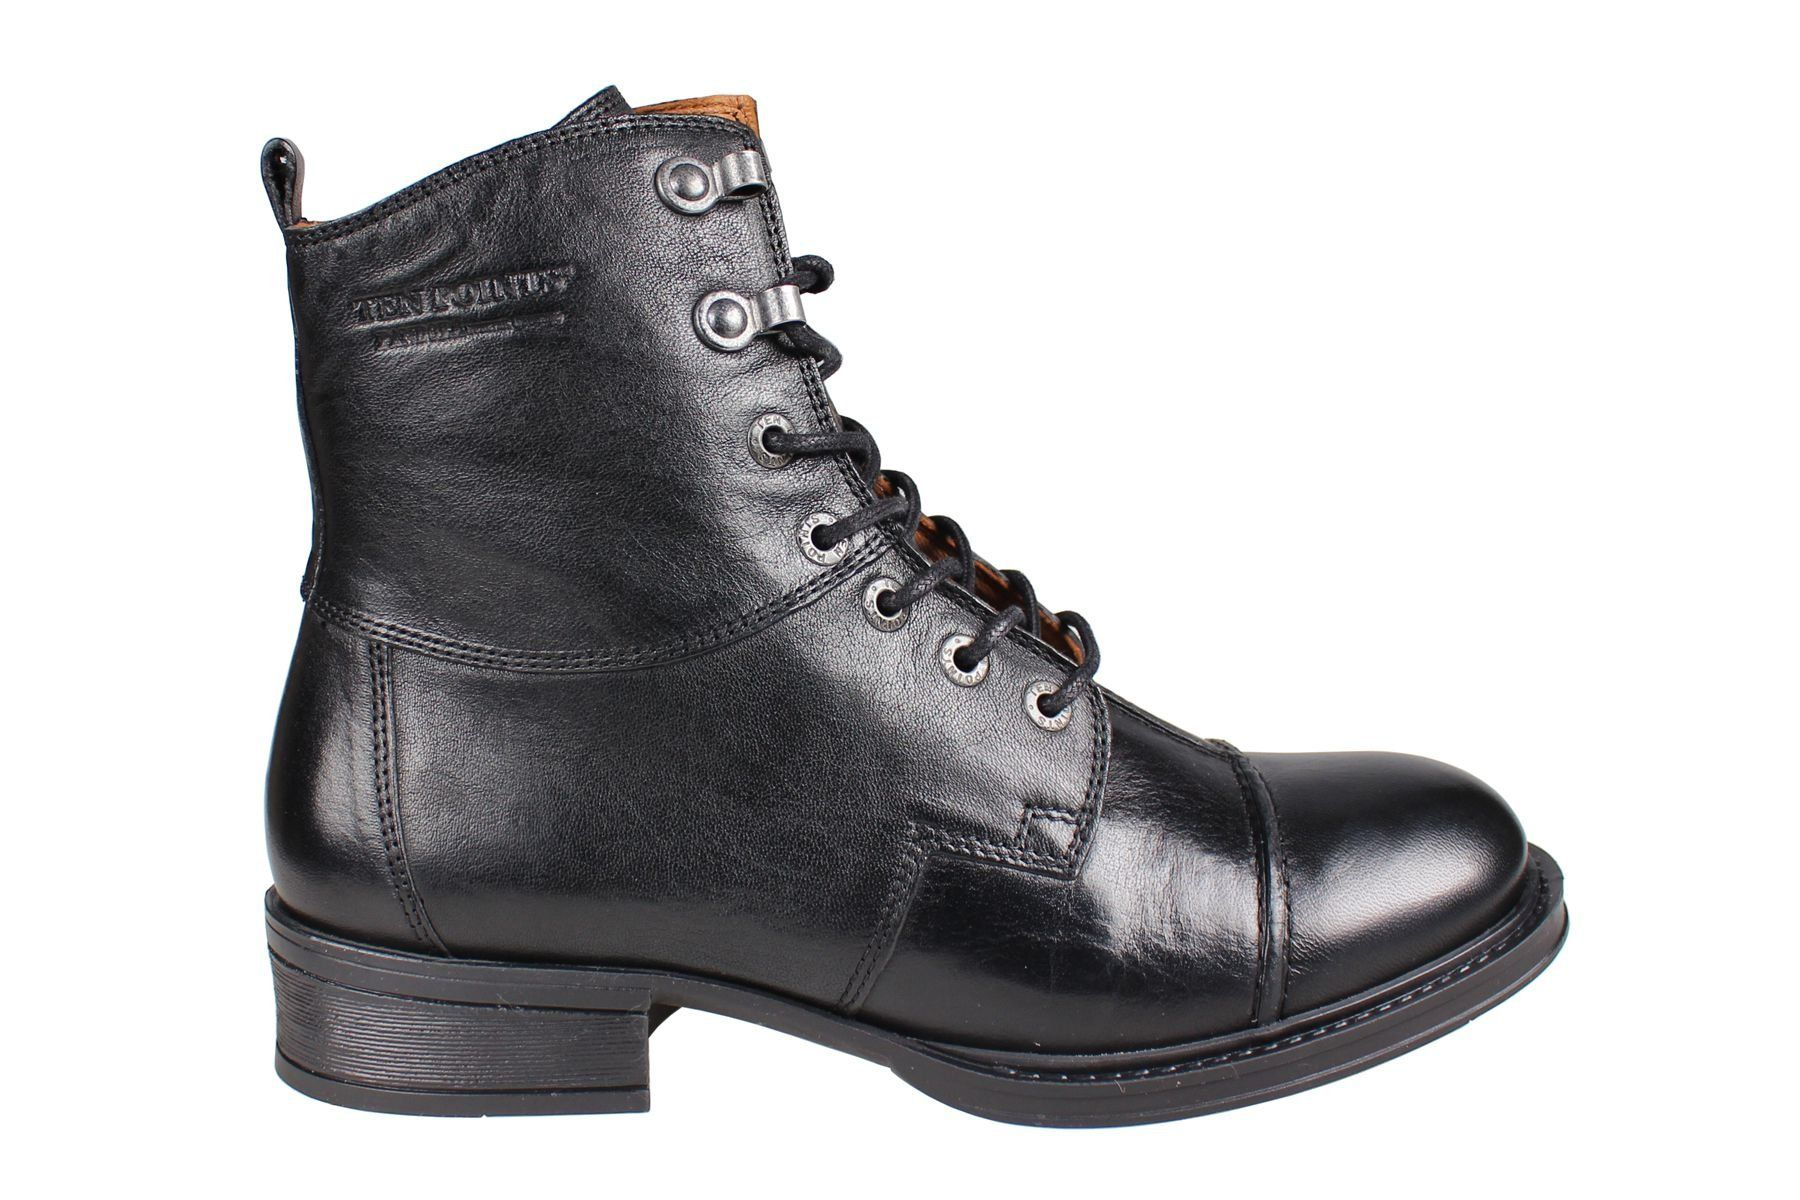 Pandora Lace-Up Boot in Black